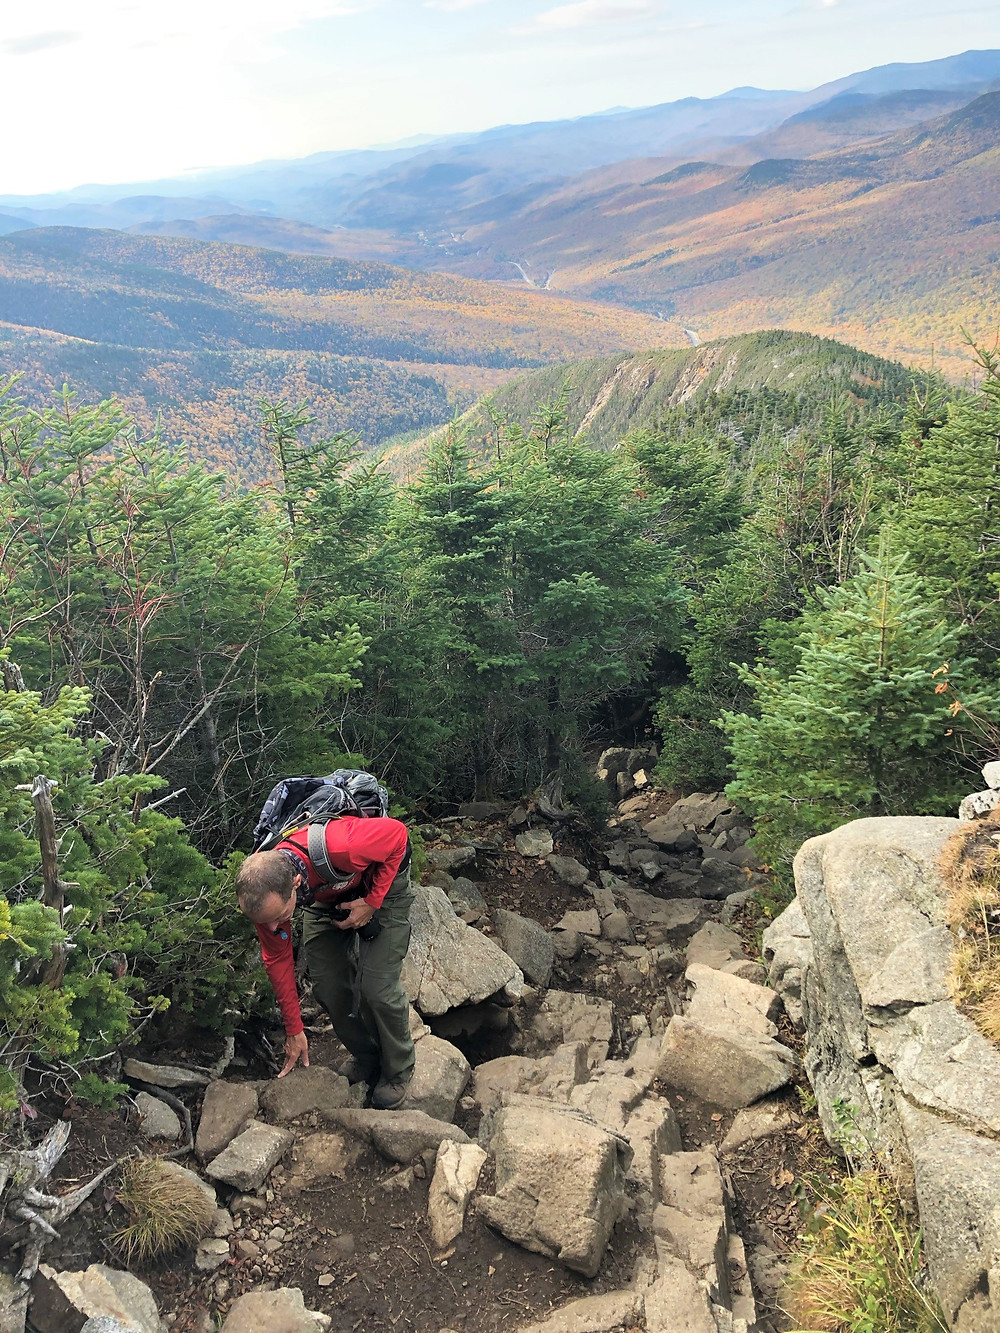 Eroded and rock covered trail in White Mountains of NH. Old Bridle Path to Mt Lafayette